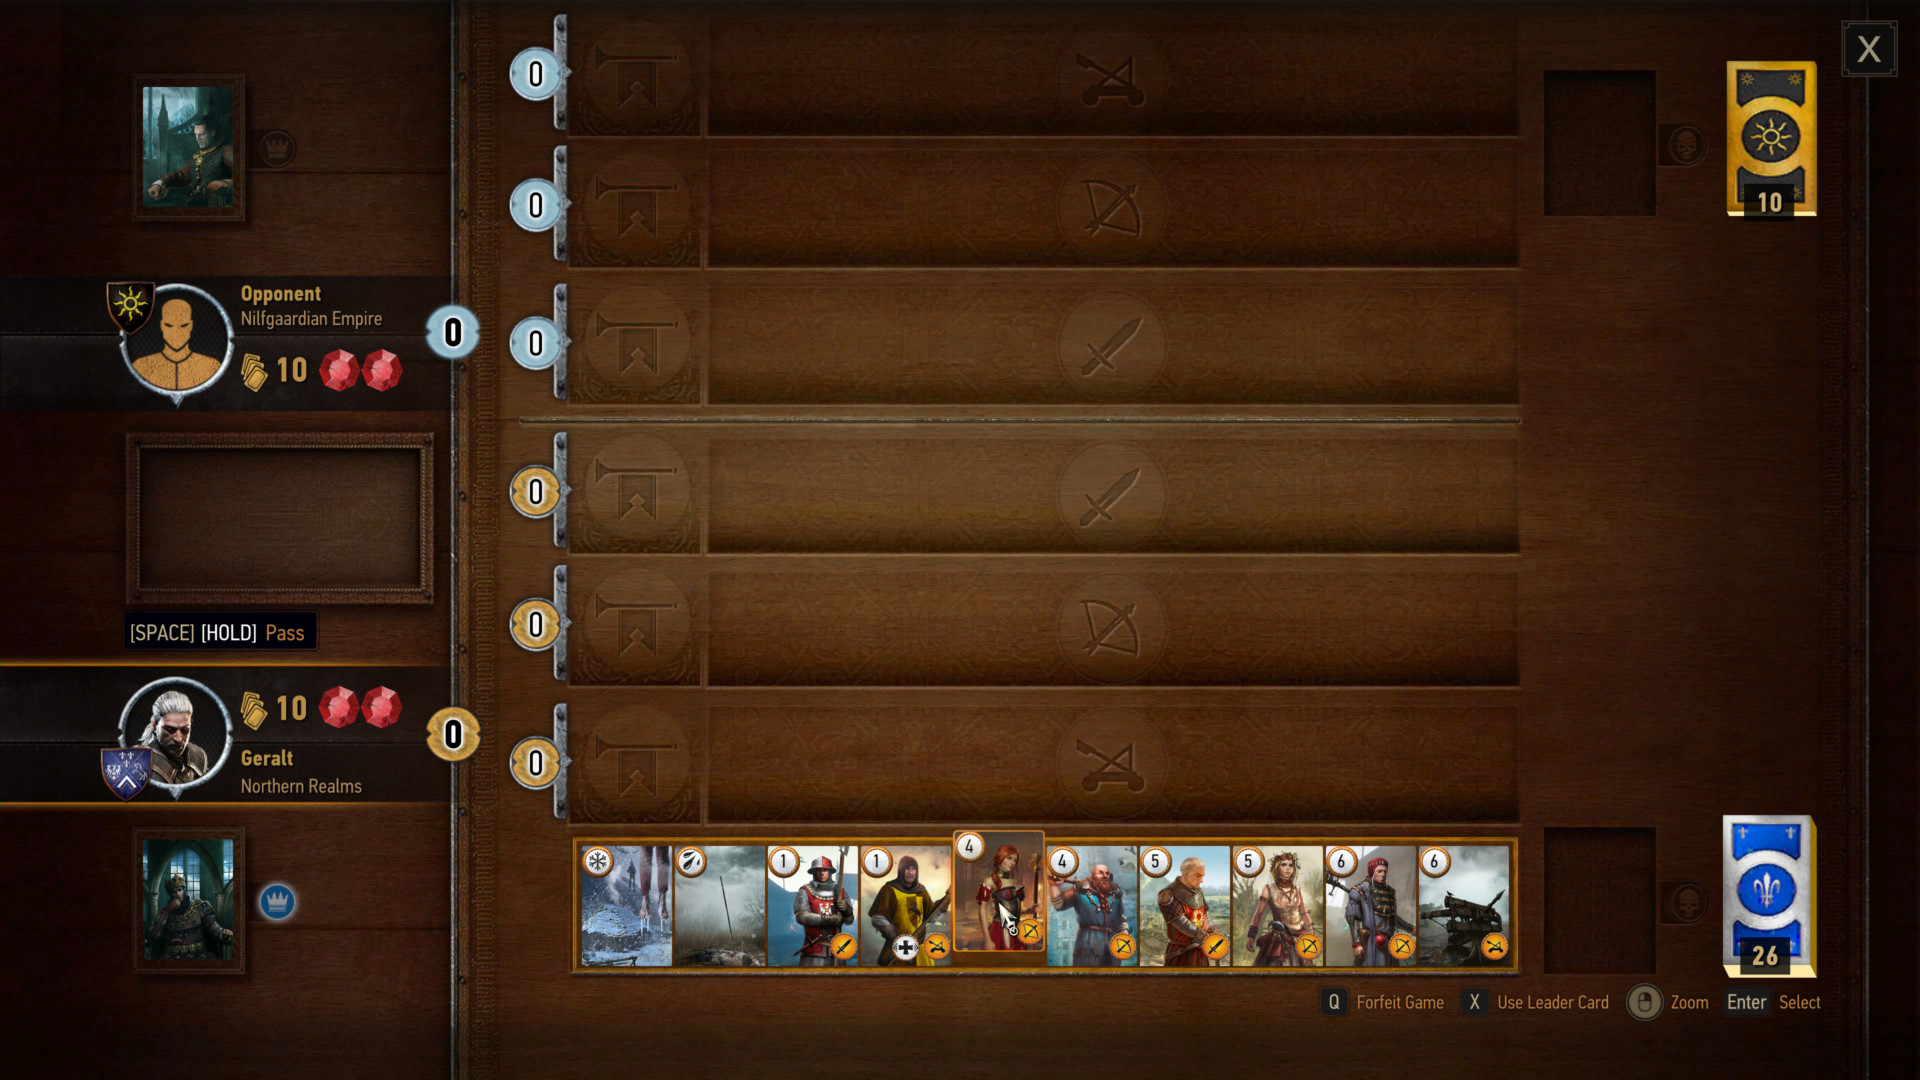 Card game screenshot of The Witcher 3: Wild Hunt video game interface.